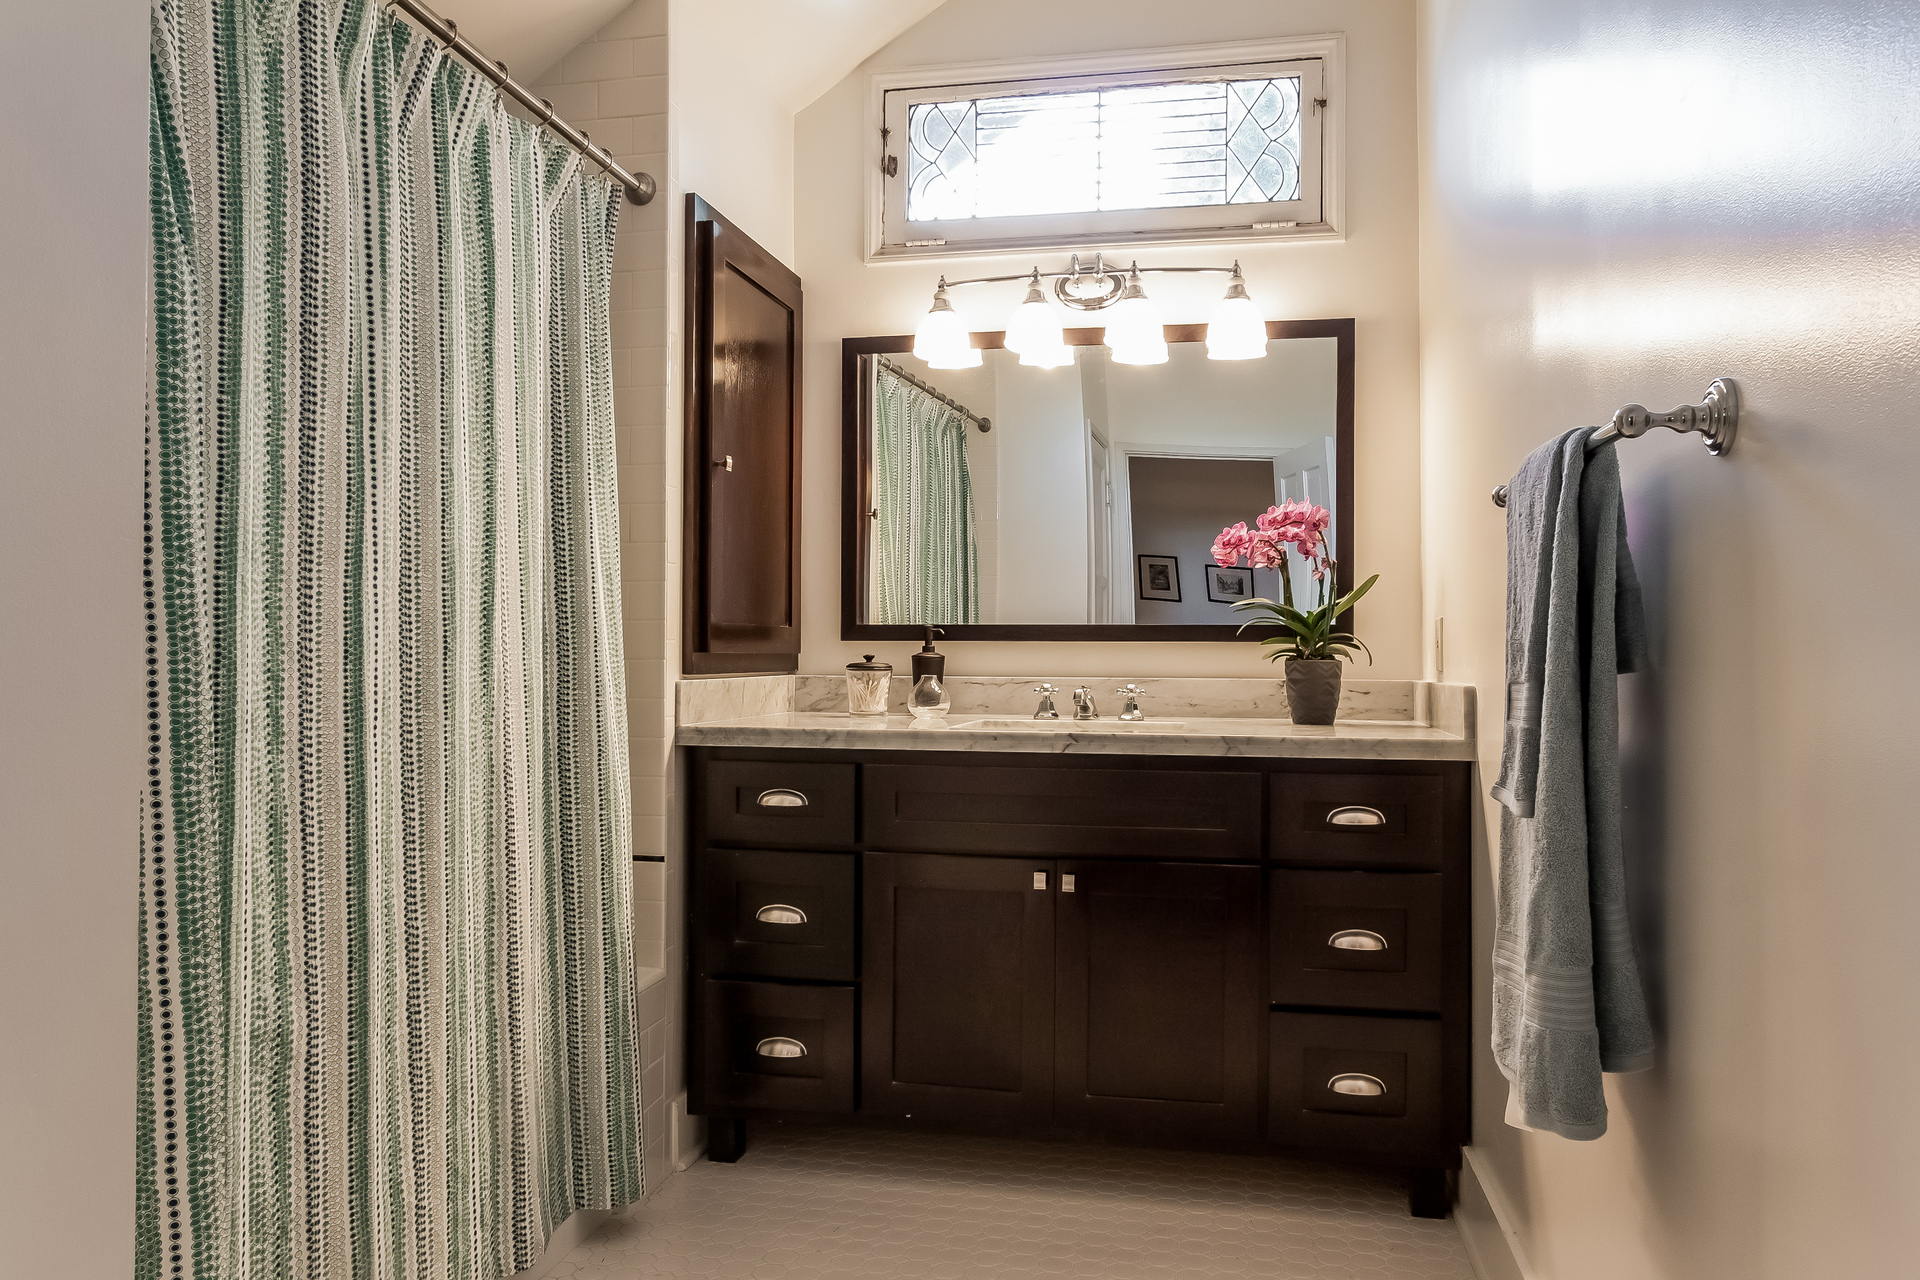 021-Bathroom-1926906-medium.jpg